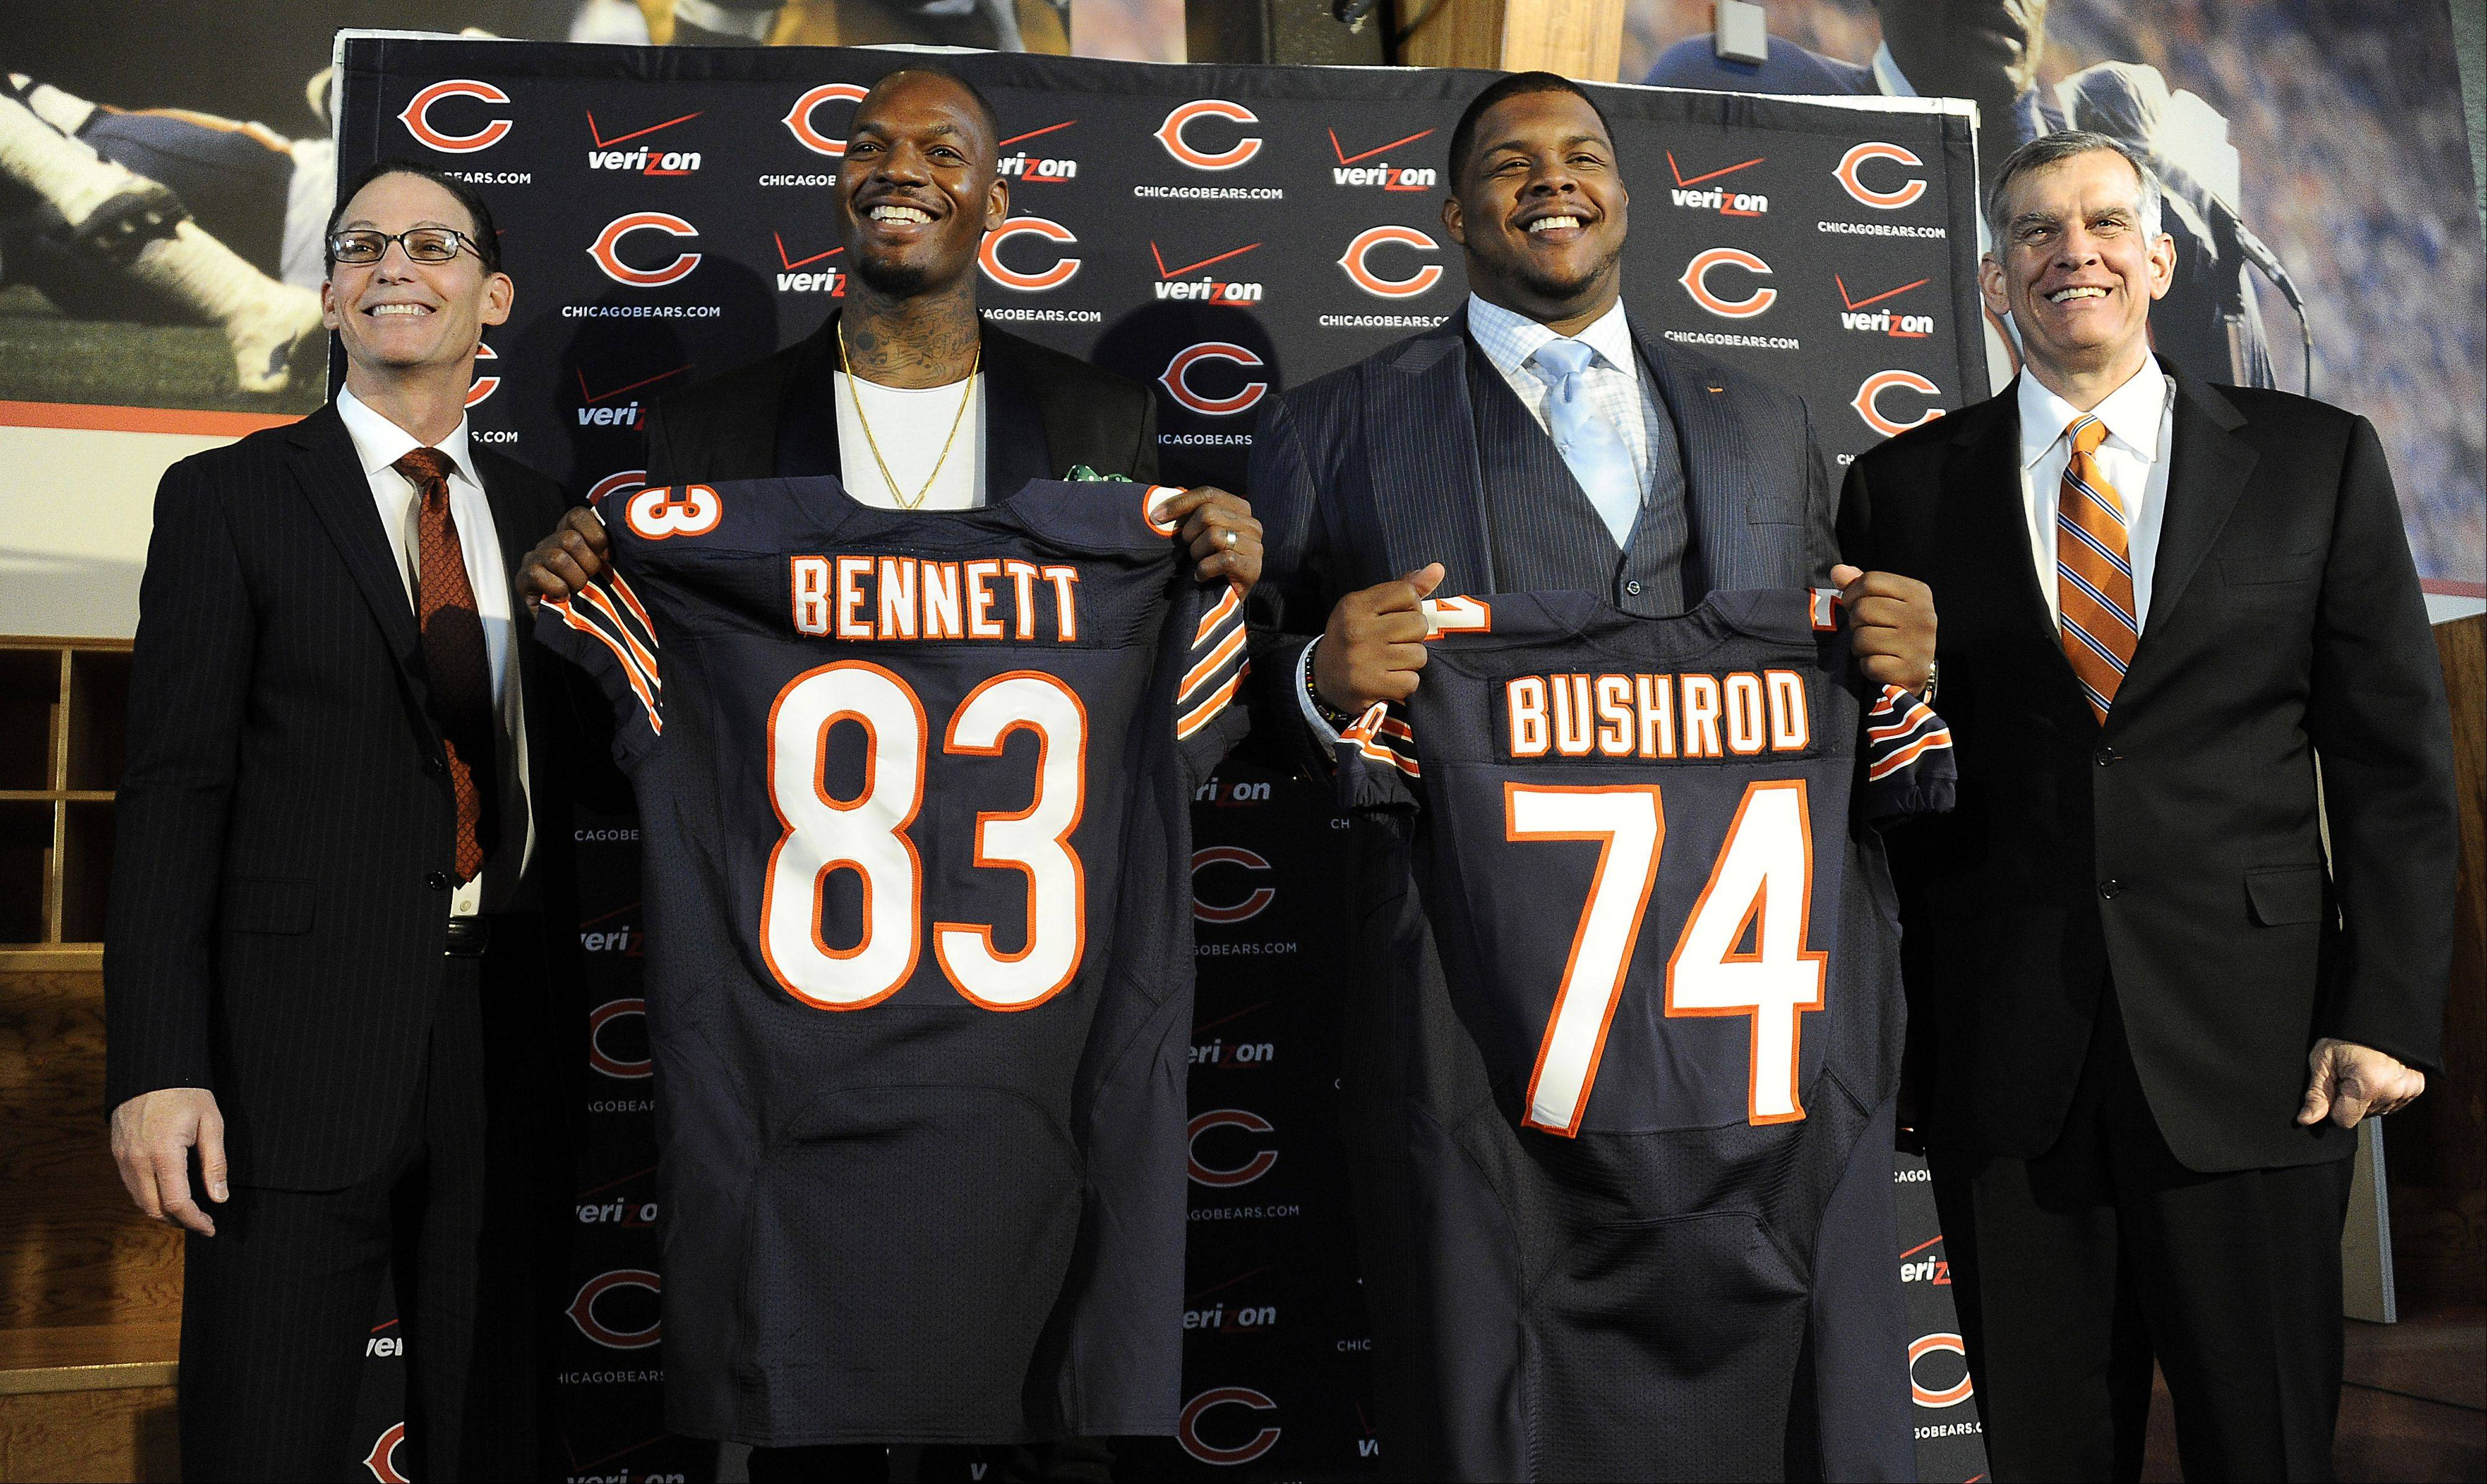 Bears coach Marc Trestman along with tight end Martellus Bennett and offensive tackle Jermon Bushrod and Bears General Manager Phil Emery stand with their new players introduced at the Walter Payton Center in Lake Forest on Wednesday.